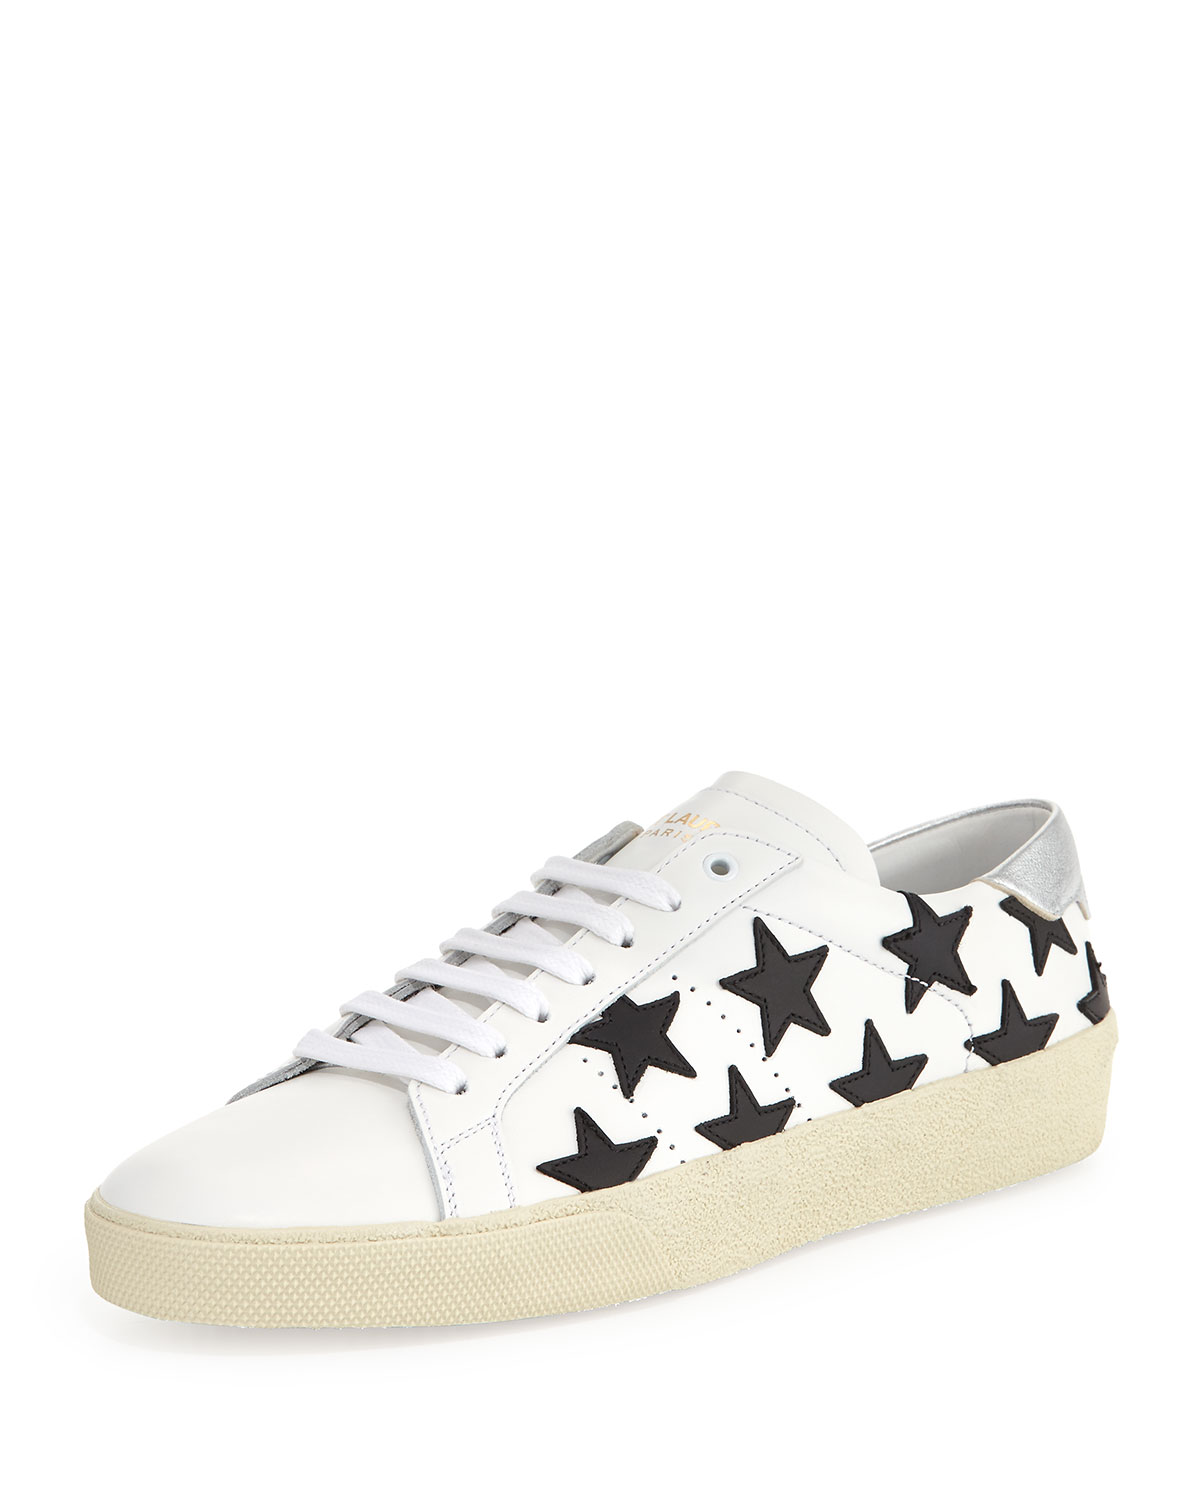 296c521dce5 Saint Laurent Star-Embroidered Leather Sneaker | Neiman Marcus